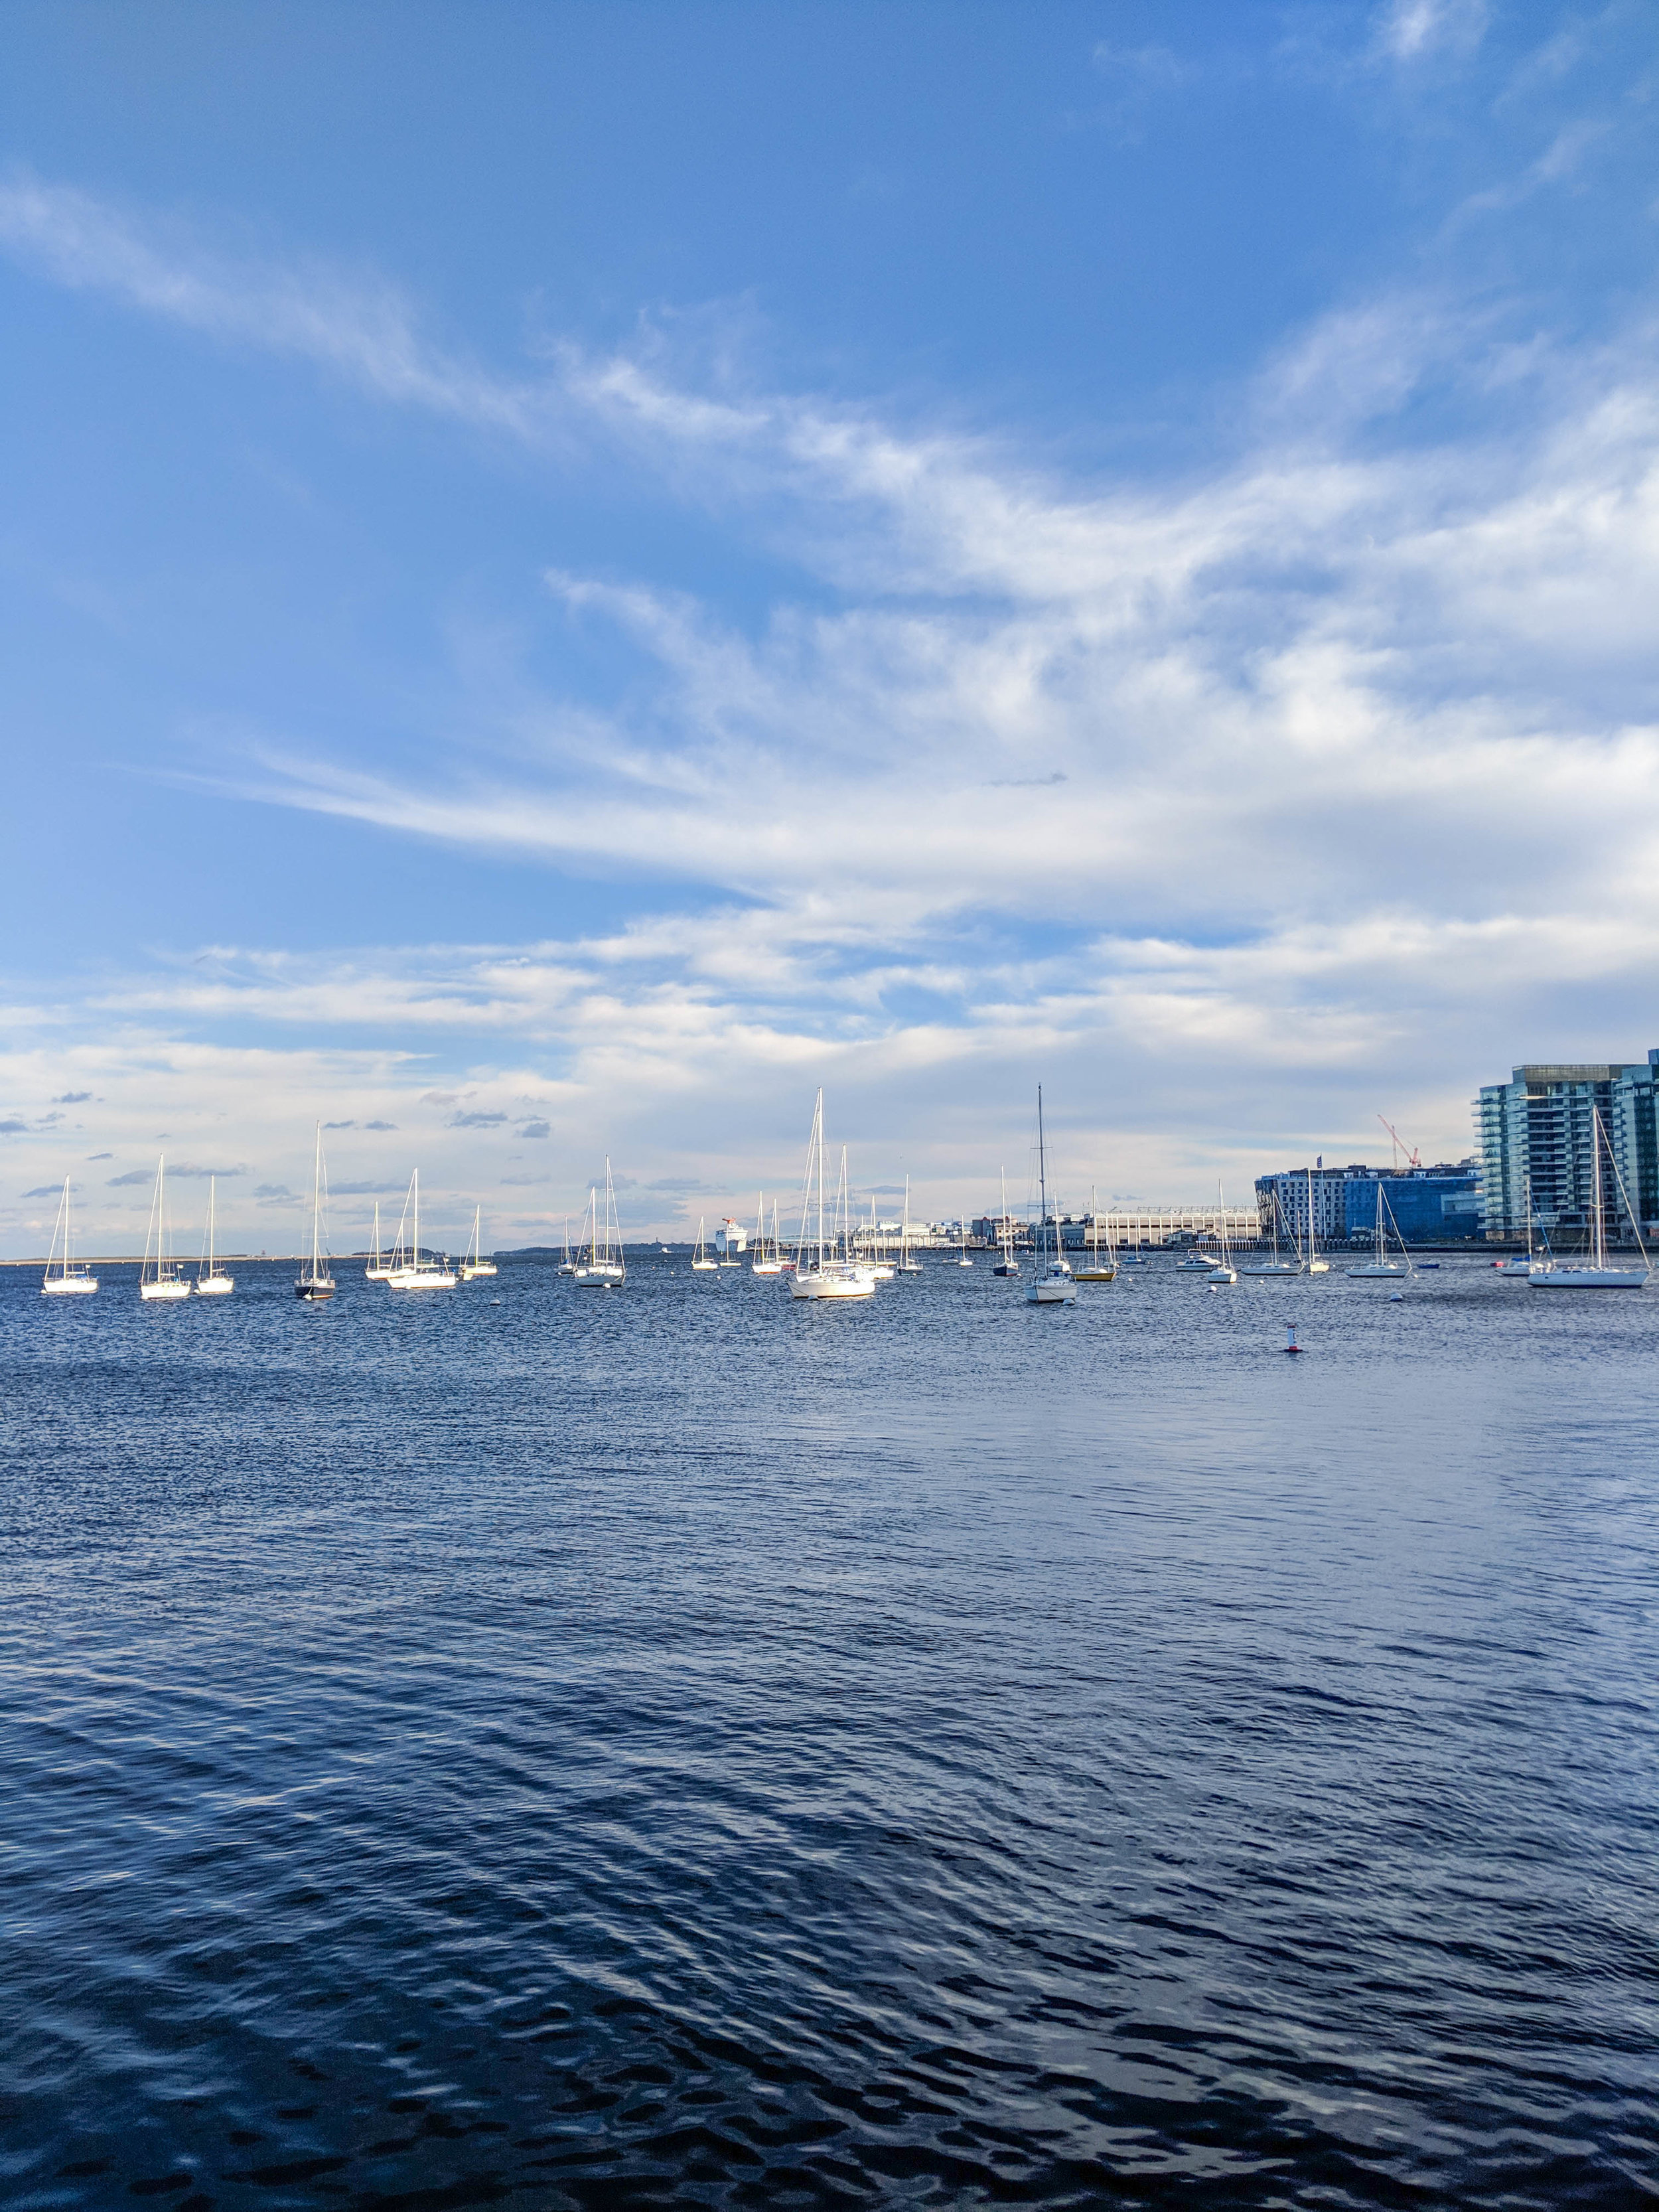 bri rinehart; photography; landscape; outdoors; boats; boston; harbor